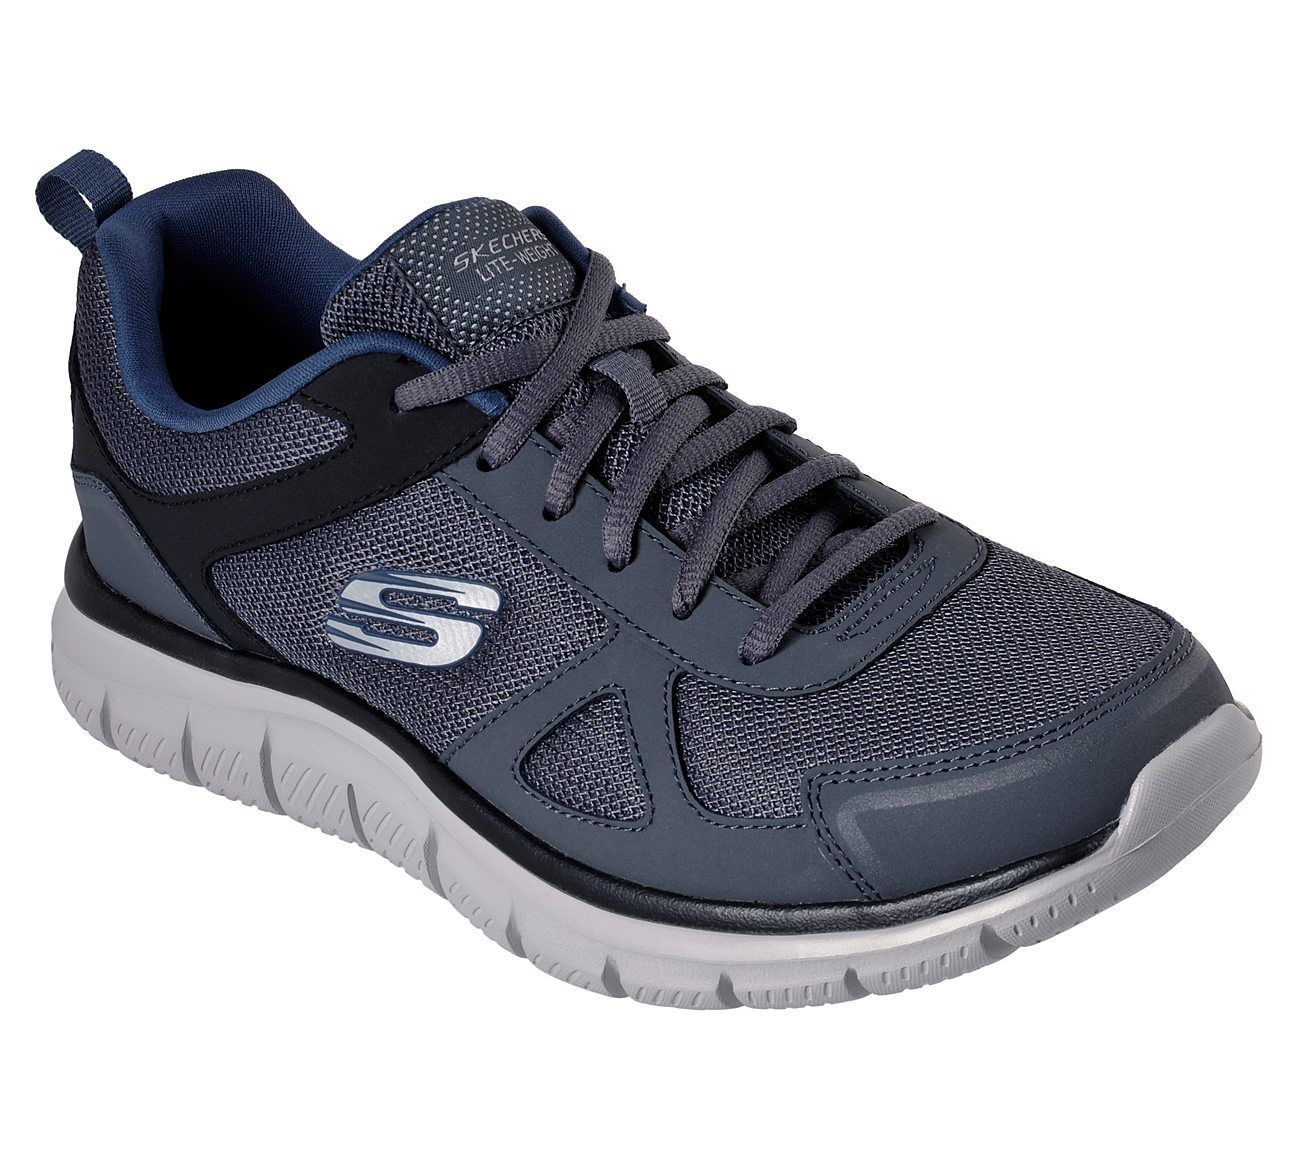 750abbe3 52631 Gris Azul Marino Skechers Zapatos and 50 similar items